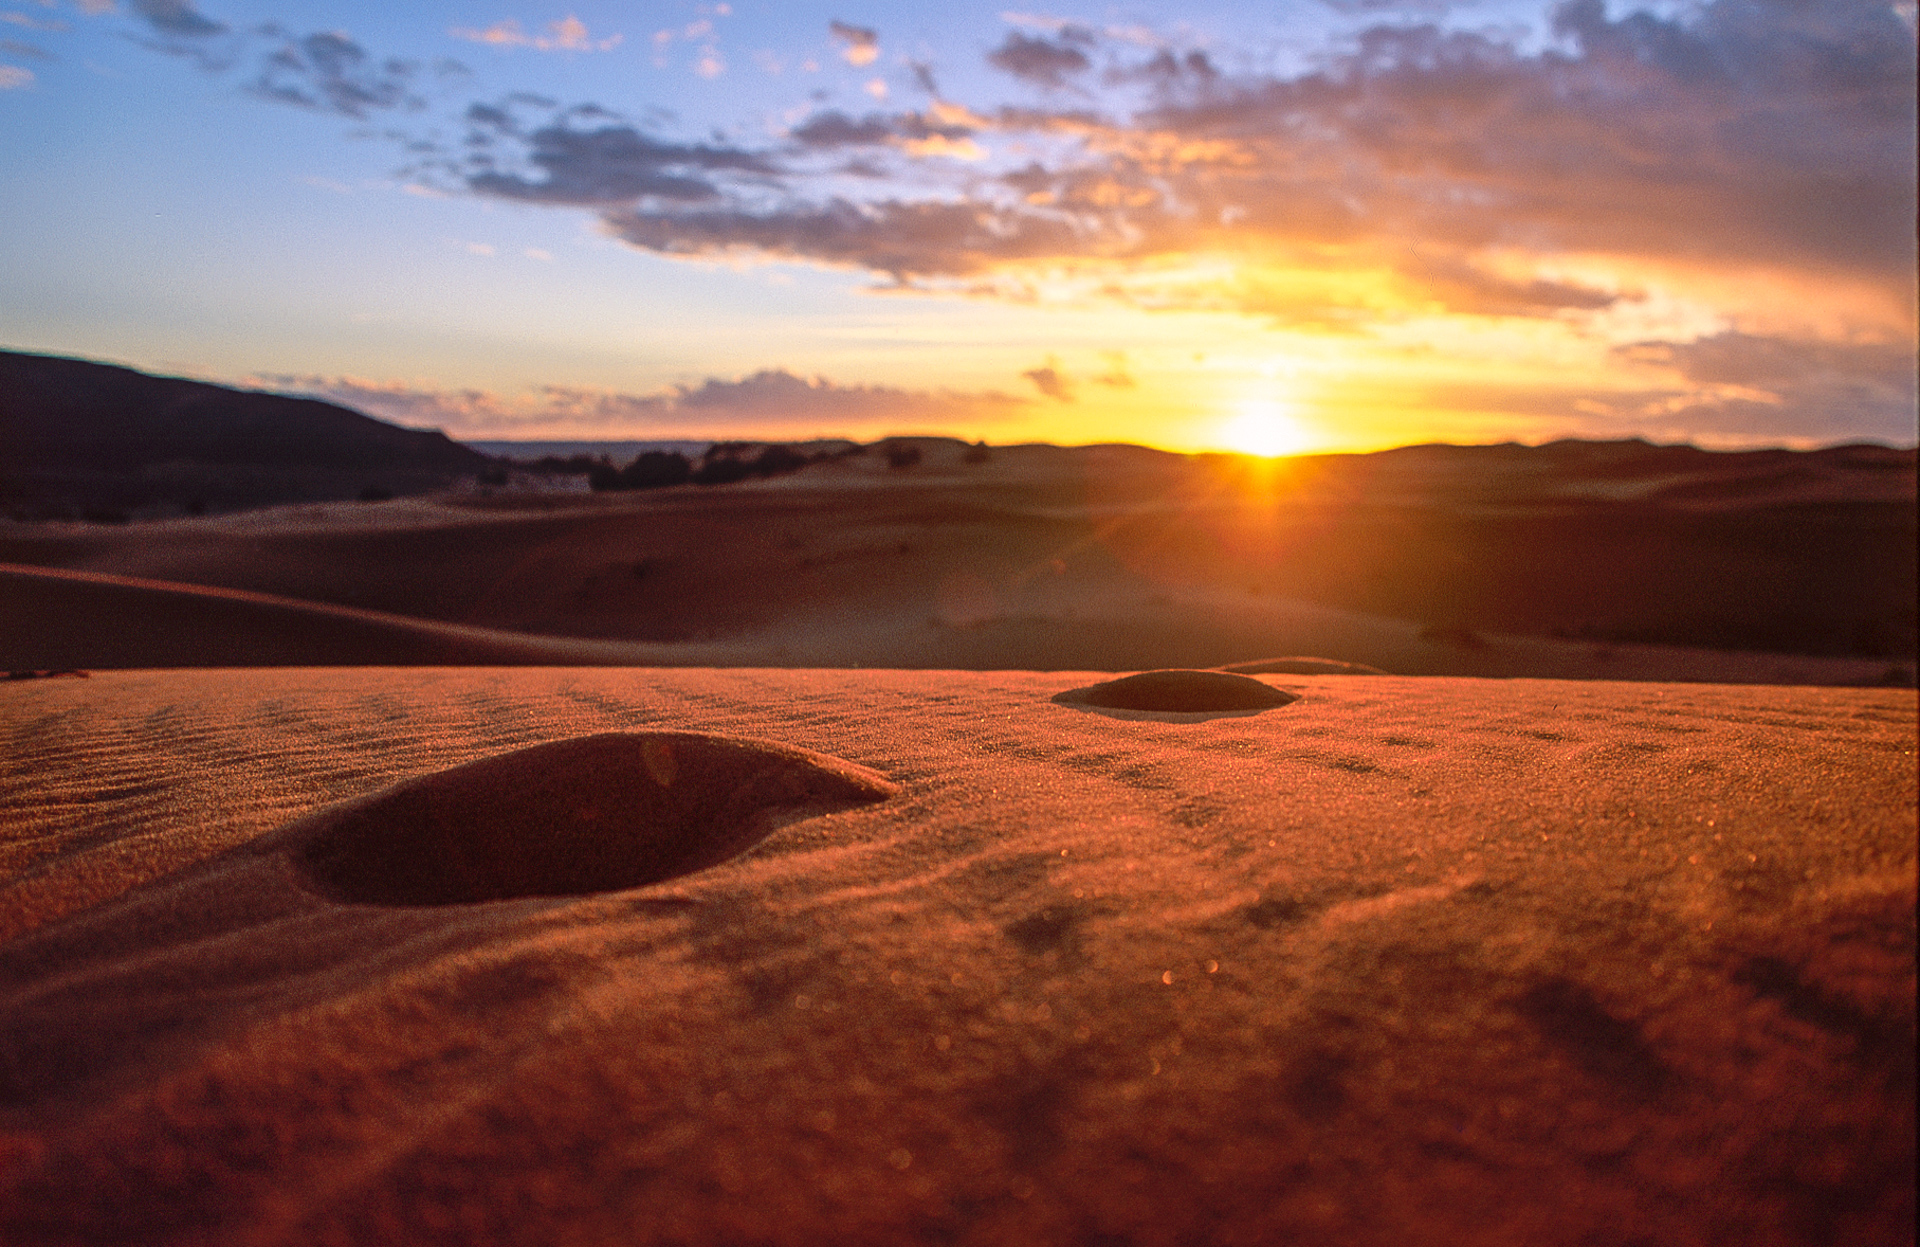 Sunset in the sand dunes of Erg Chebbi